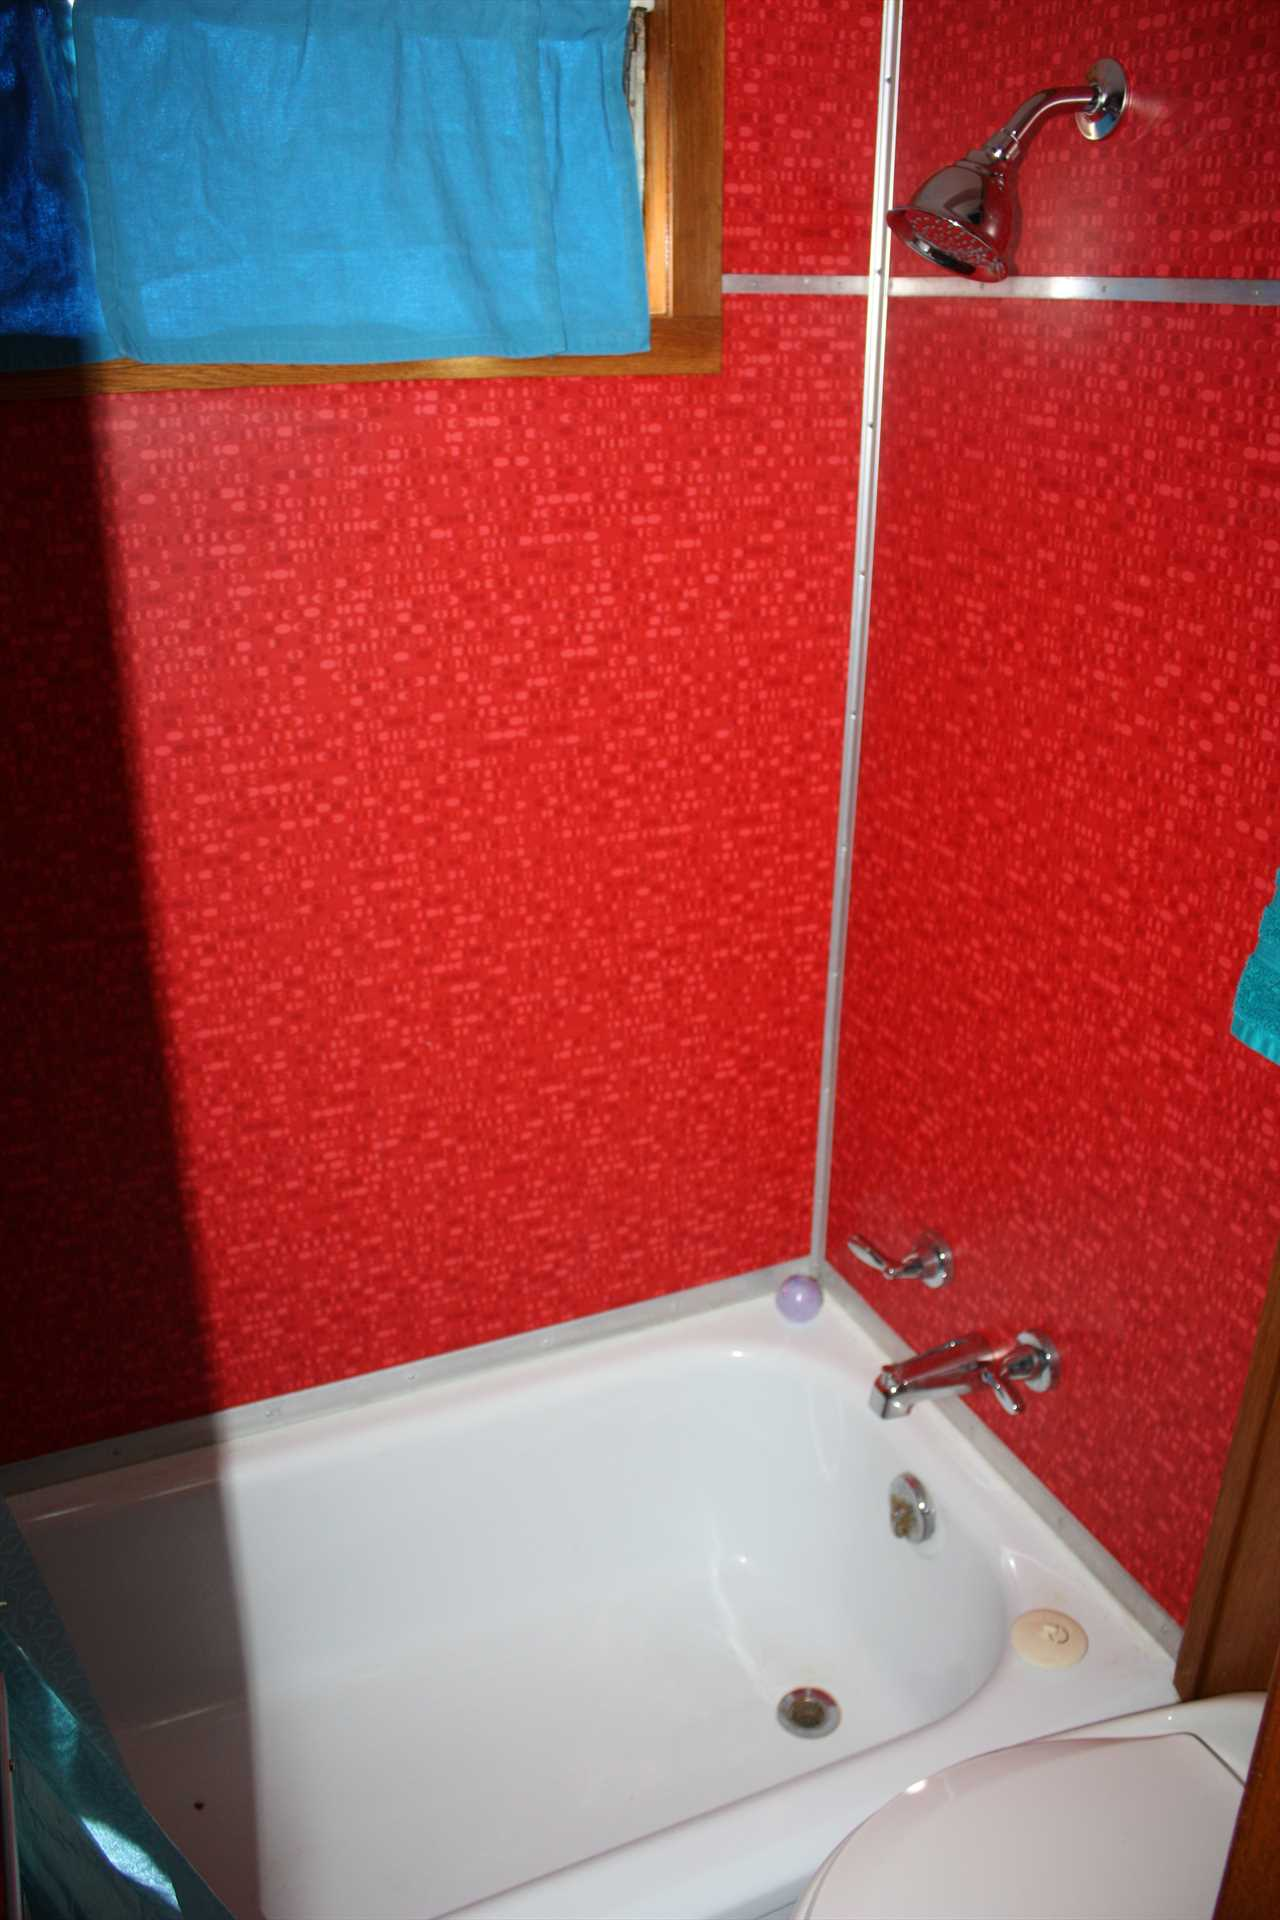 The Spartanette features a full bath with a tub and shower combo, and clean bath linens are provided for all our guests.